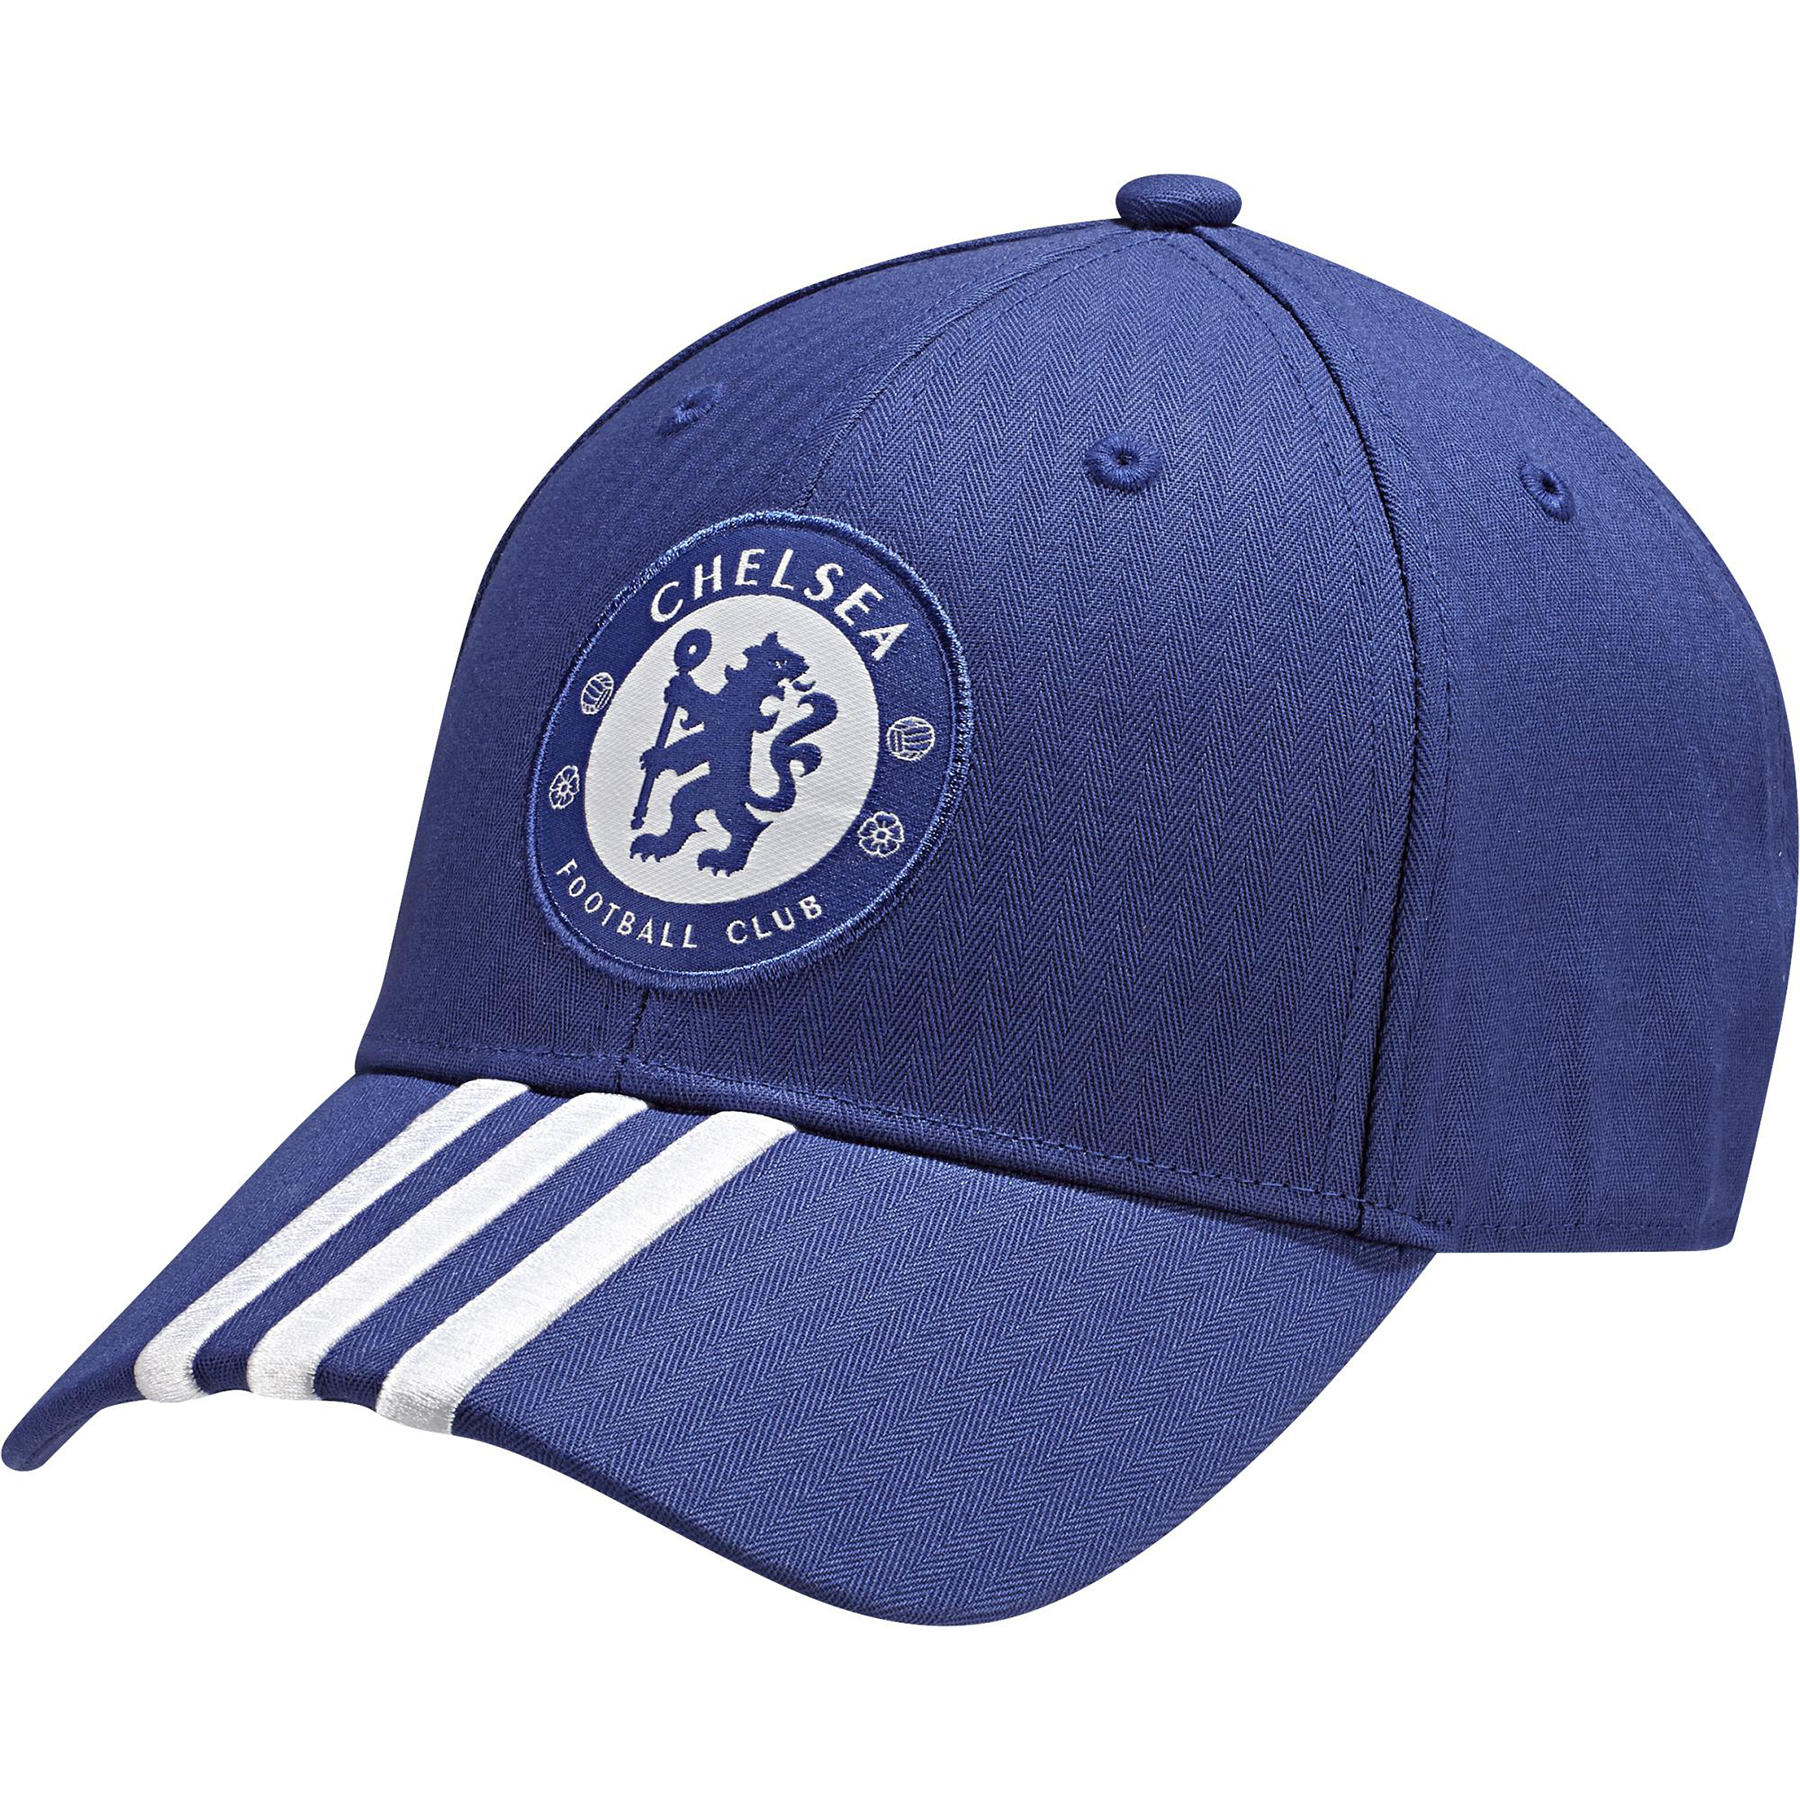 Chelsea 3 Stripe Cap Blue Celebrate your favourite team in style with this Chelsea 3 Stripe Cap.   With a woven club crest and embroidered three stripes, this Chelsea cap is the ideal choice for a fan.   Benefits: Woven club crest Embroidered 3 stripes Embroidered Performance logo Buckle with club crest Integrated design 100% Cotton